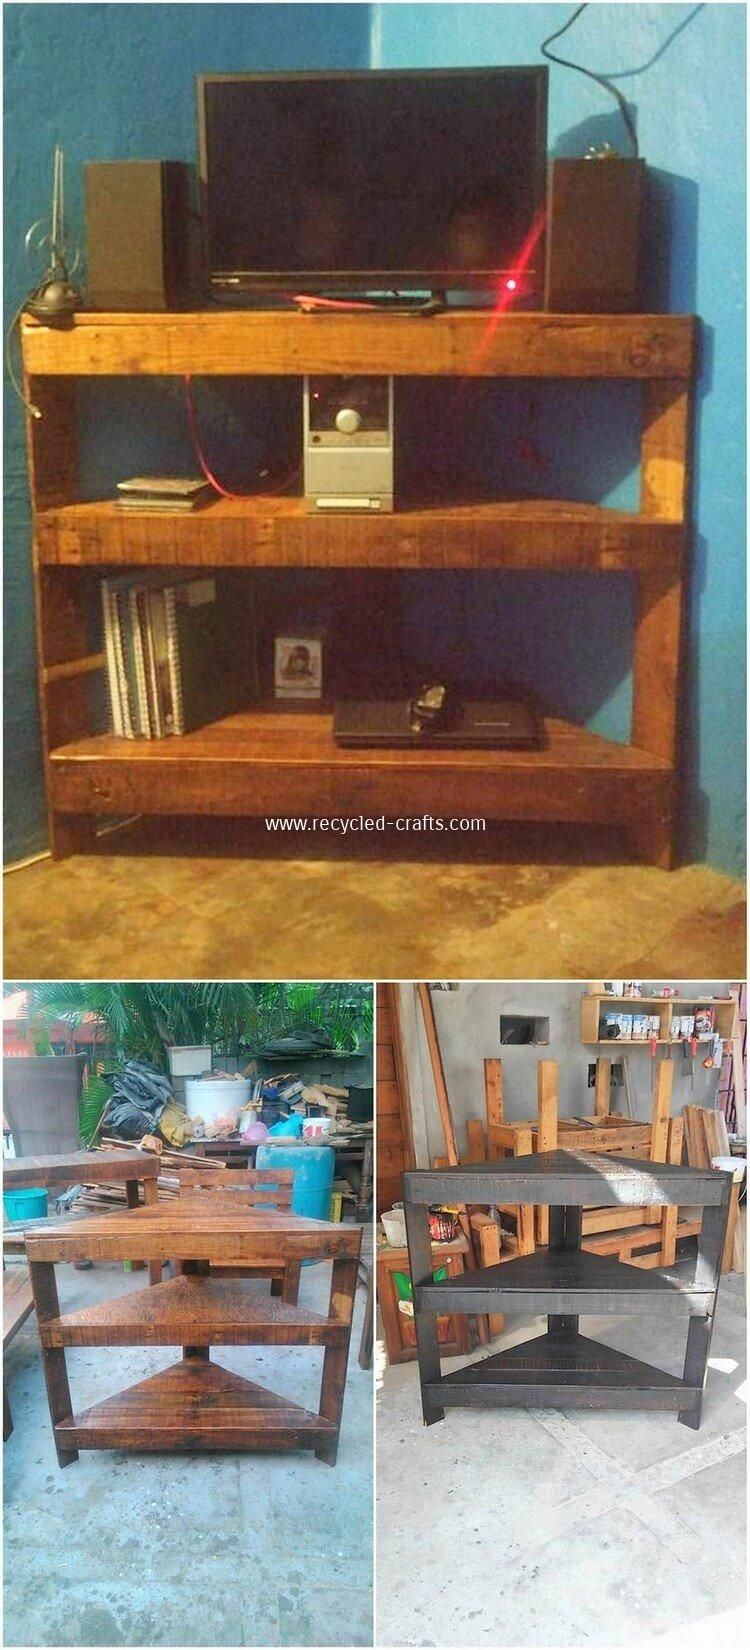 easy to build wood pallet recycling ideas in 2018 pallet ideas rh pinterest com